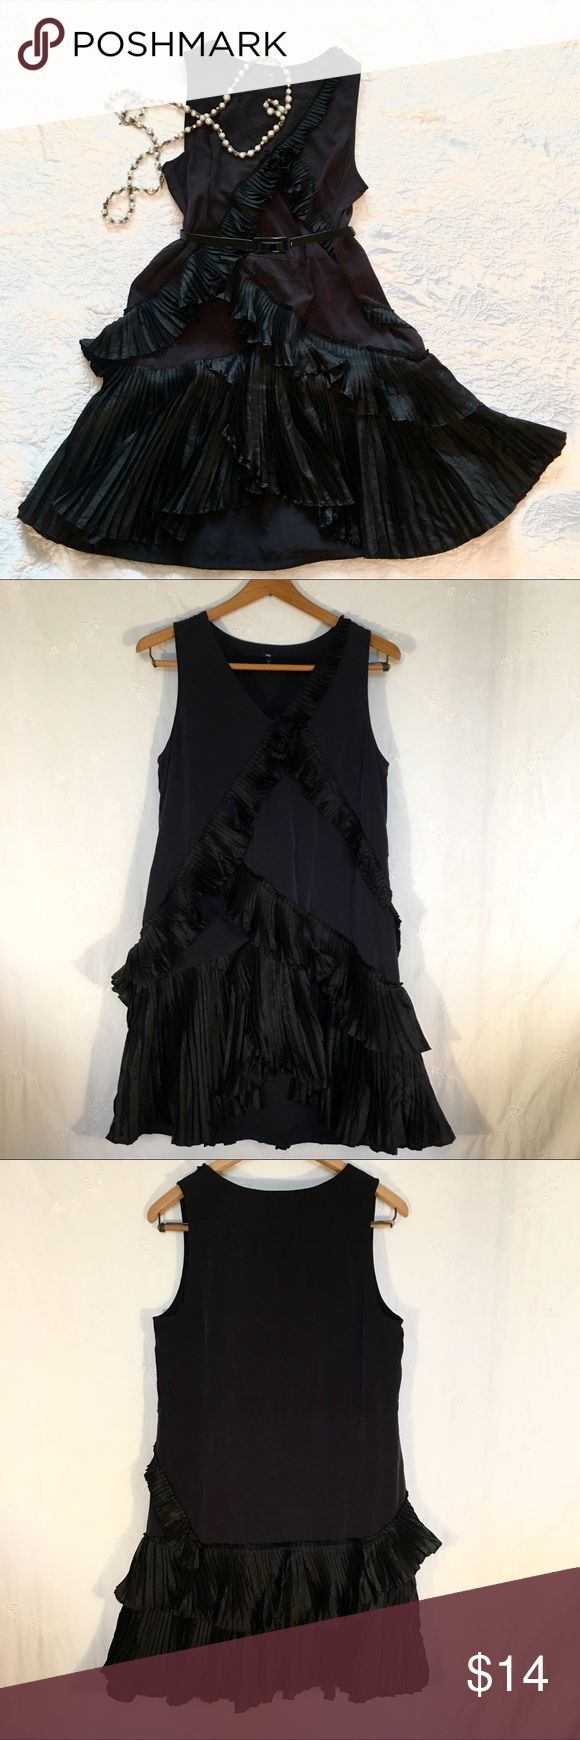 GAP Black Ruffle Polaris Dress sz 8 GAP Black Ruffle Polaris Dress  Size 8 Gently used statement dress 100% polyester  Machine wash & dry Original fabric tie belt is missing (this listing does NOT come with a belt) GAP Dresses